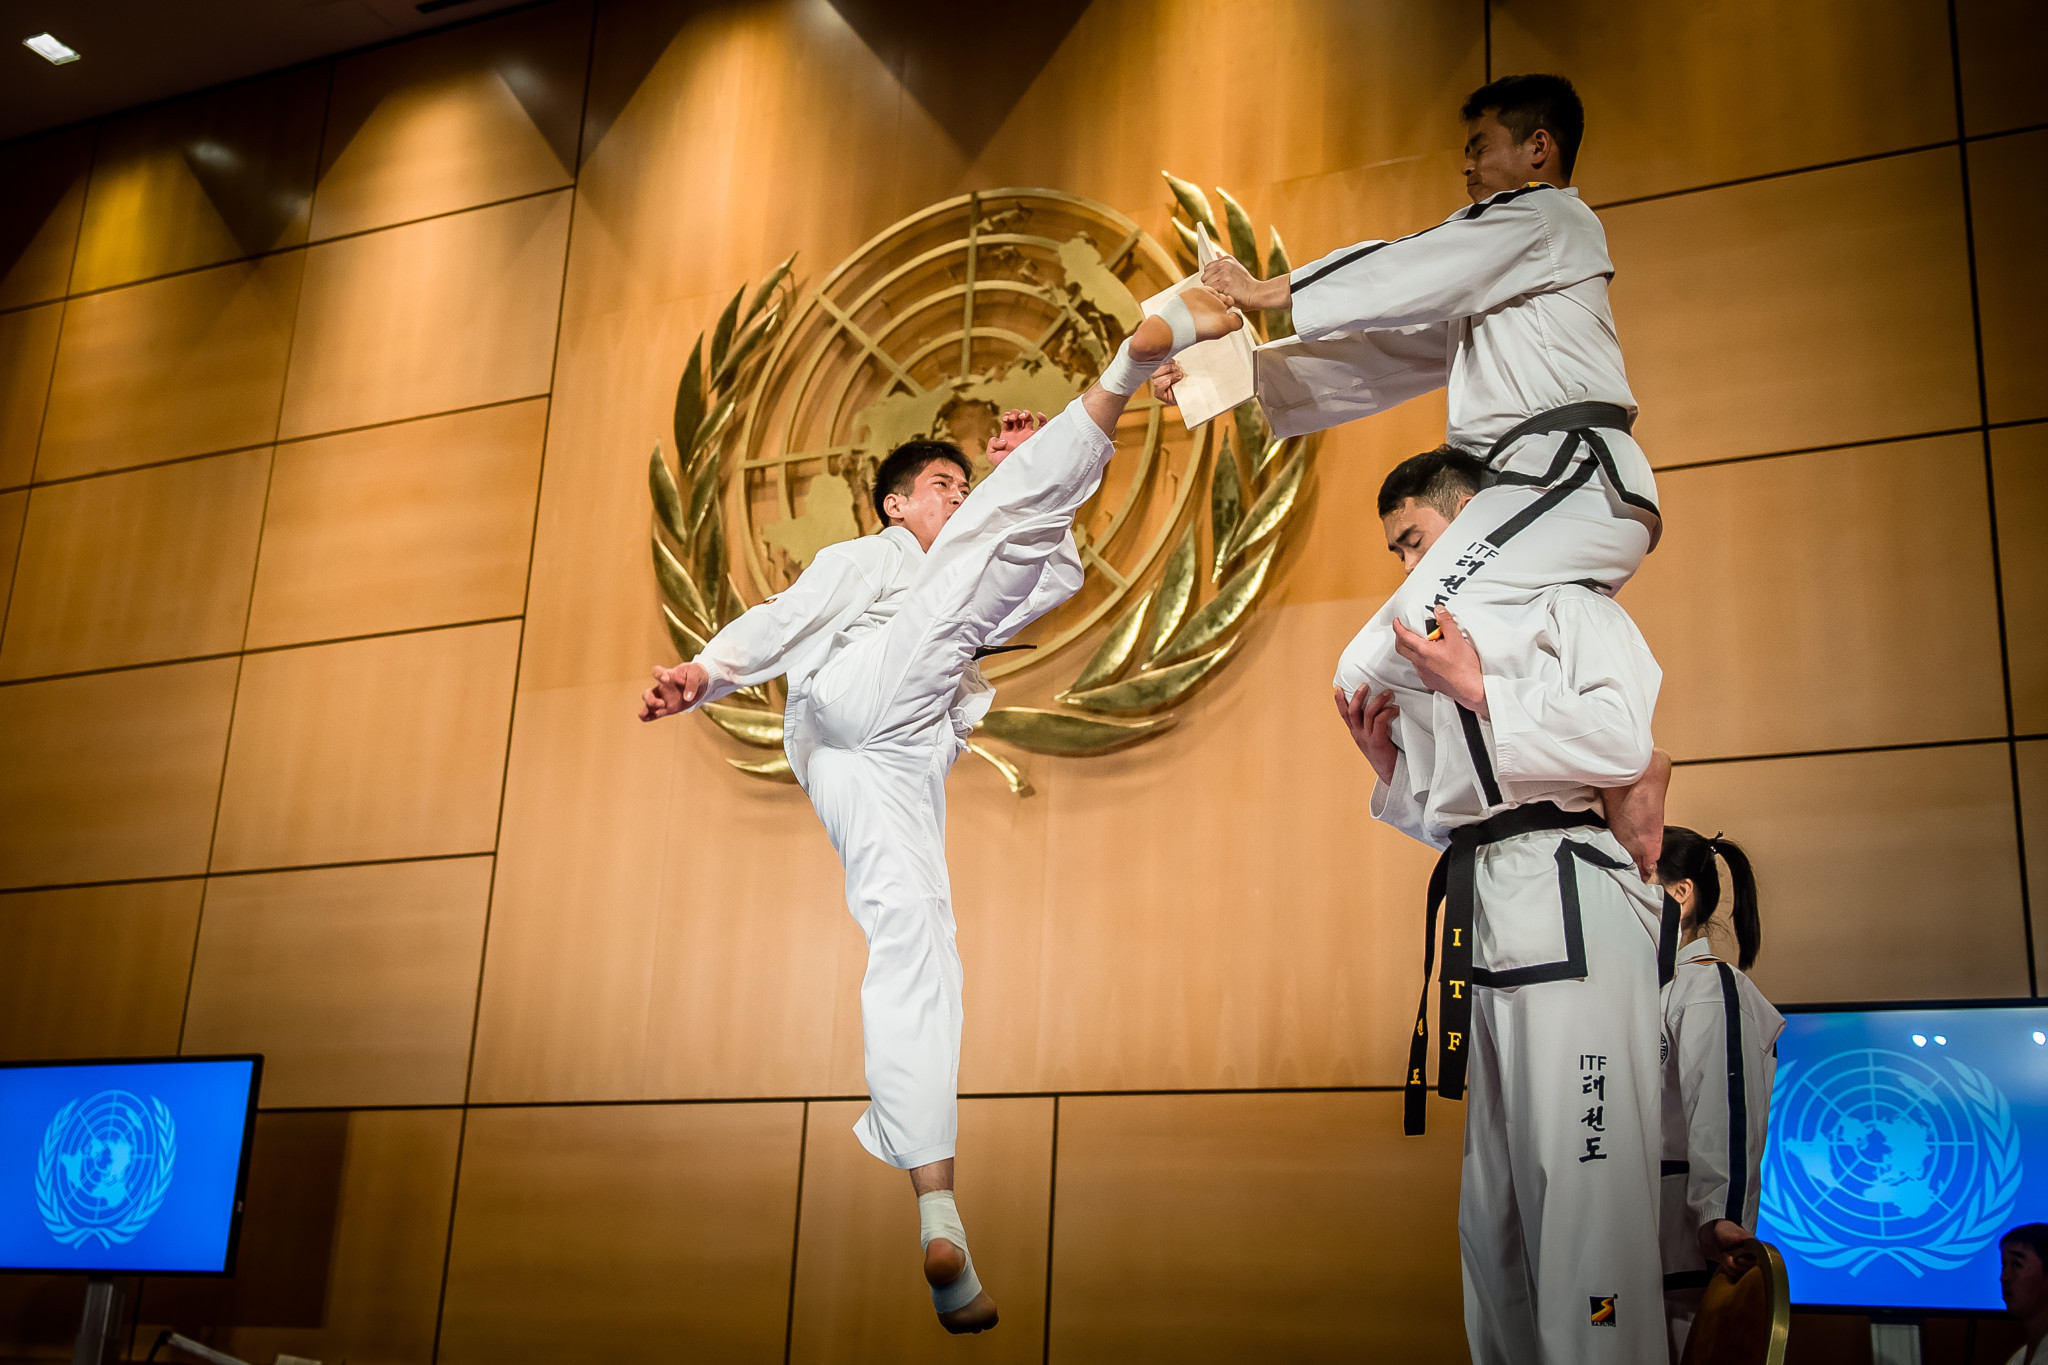 The ITF team from North Korea performed for the audience first ©World Taekwondo